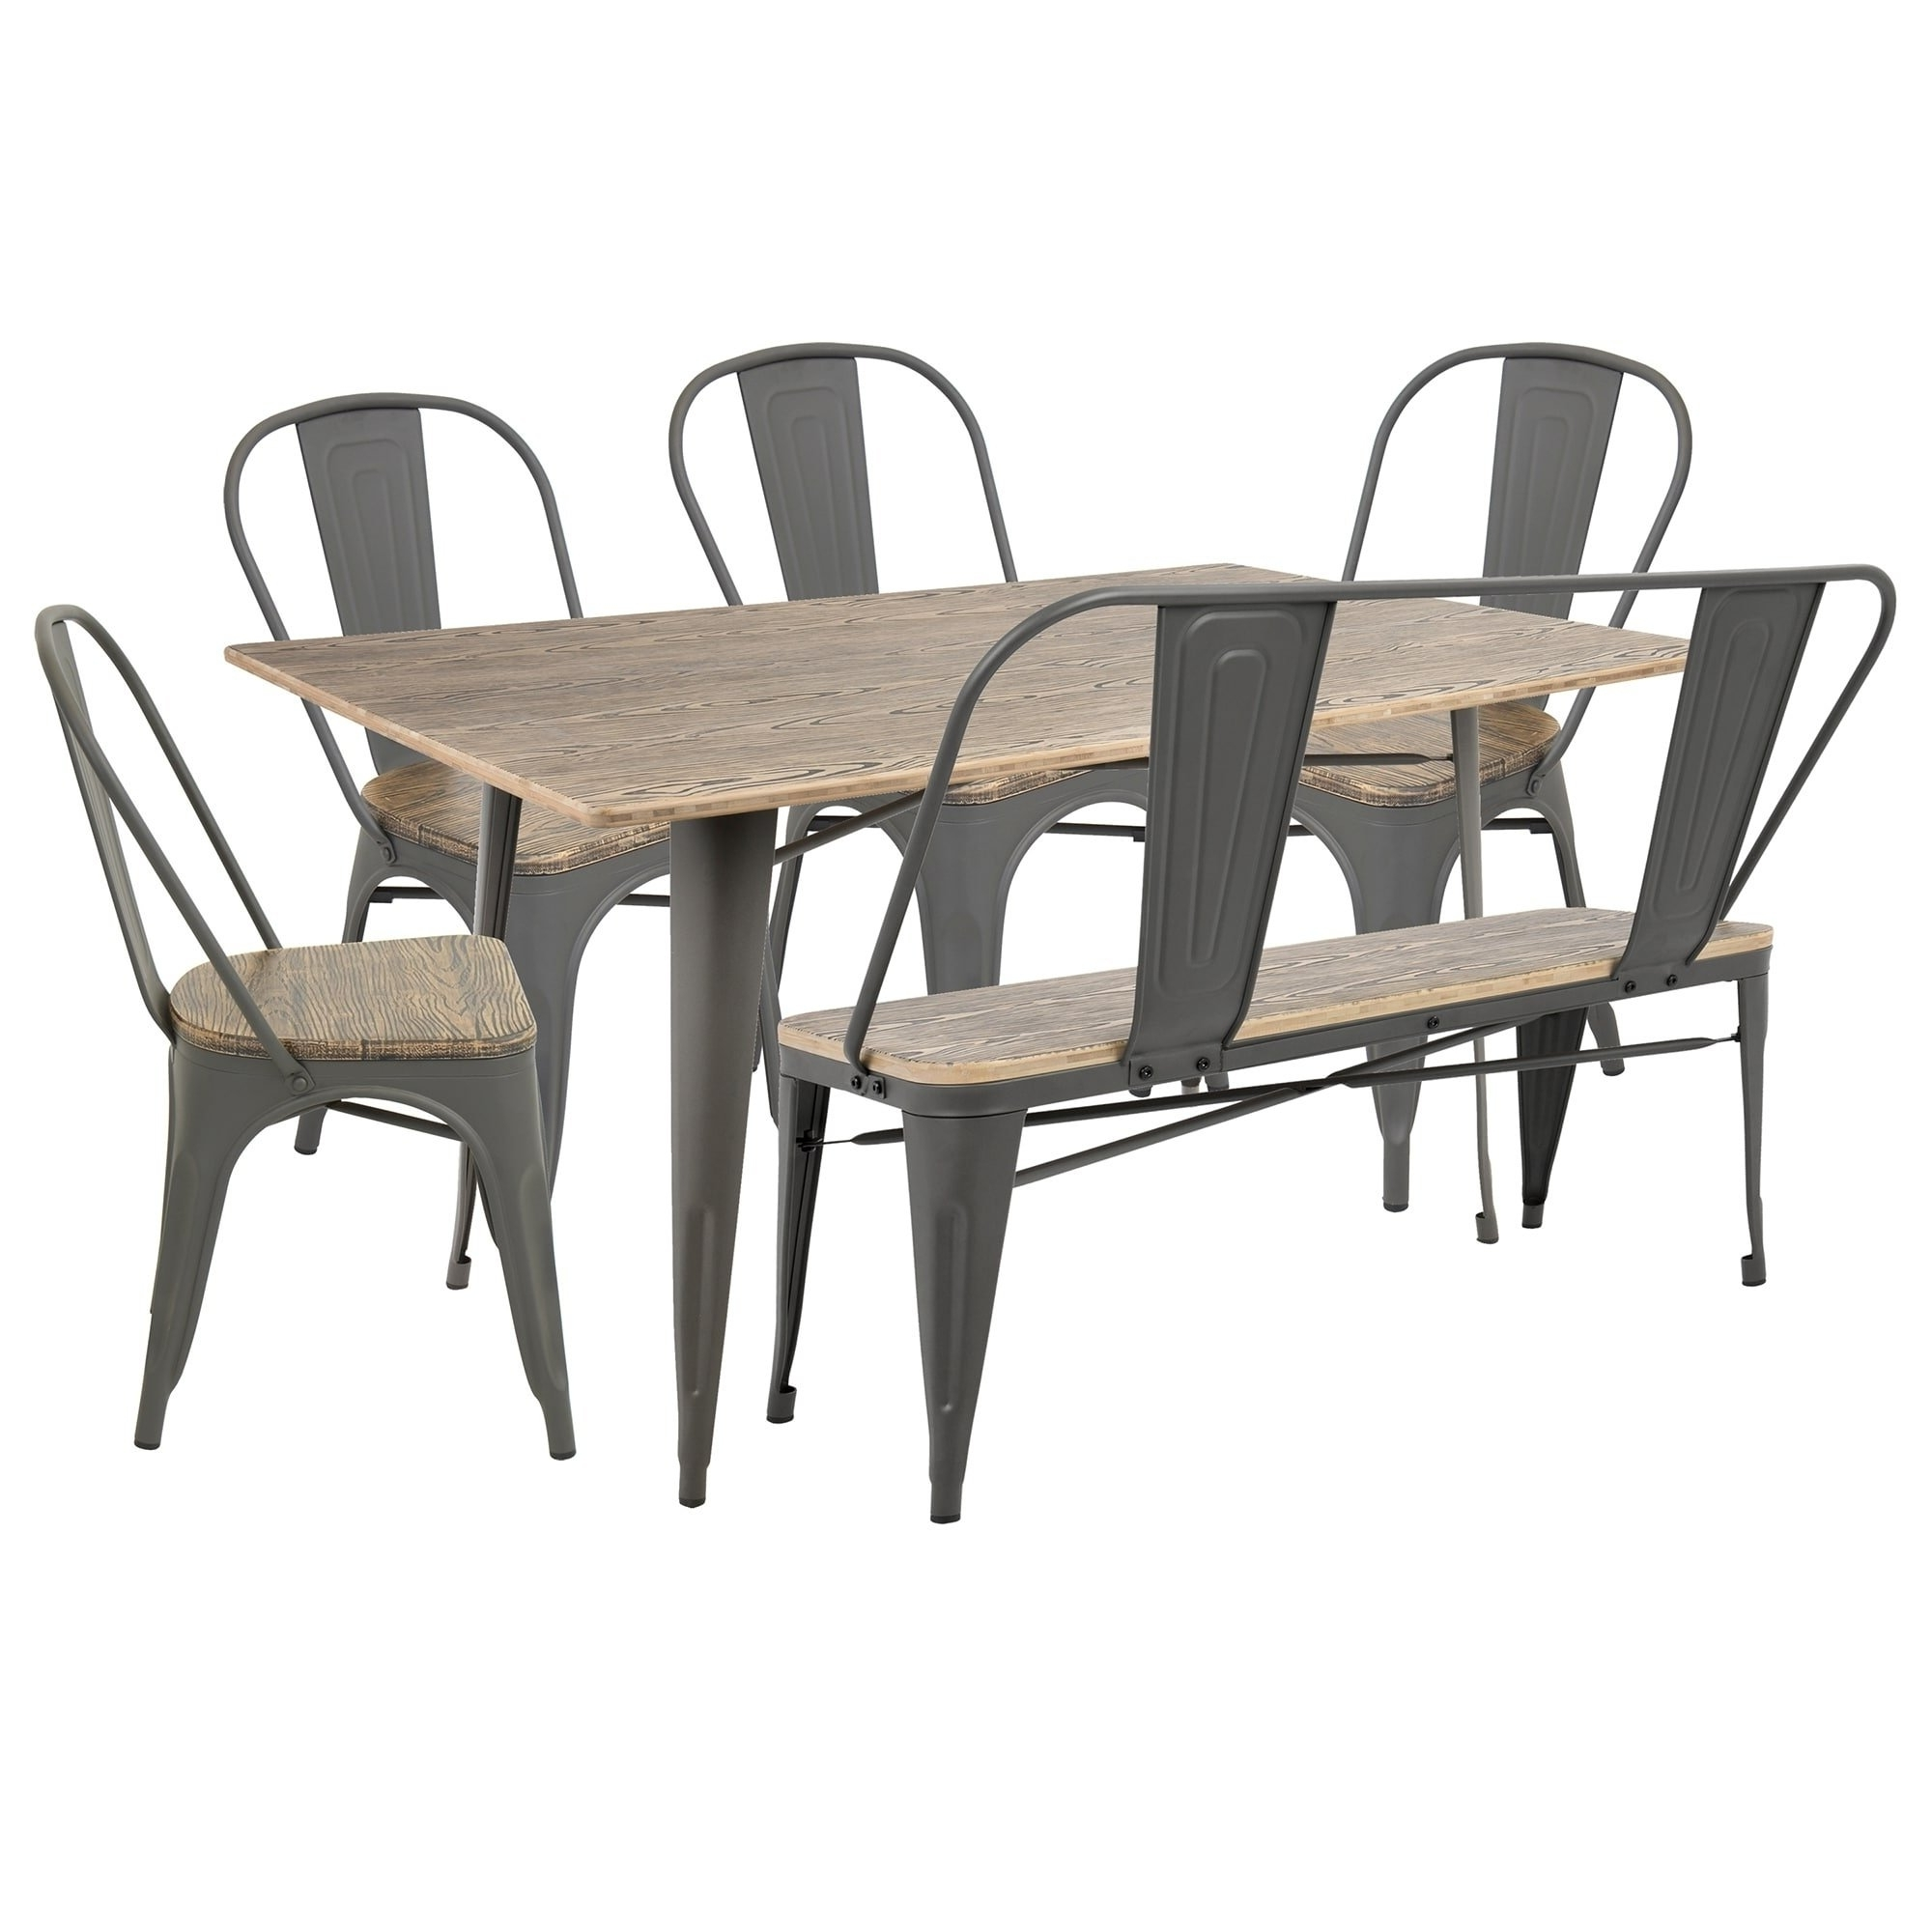 Most Current Craftsman 9 Piece Extension Dining Sets With Uph Side Chairs In Brown Kitchen & Dining Room Sets For Less (View 15 of 25)